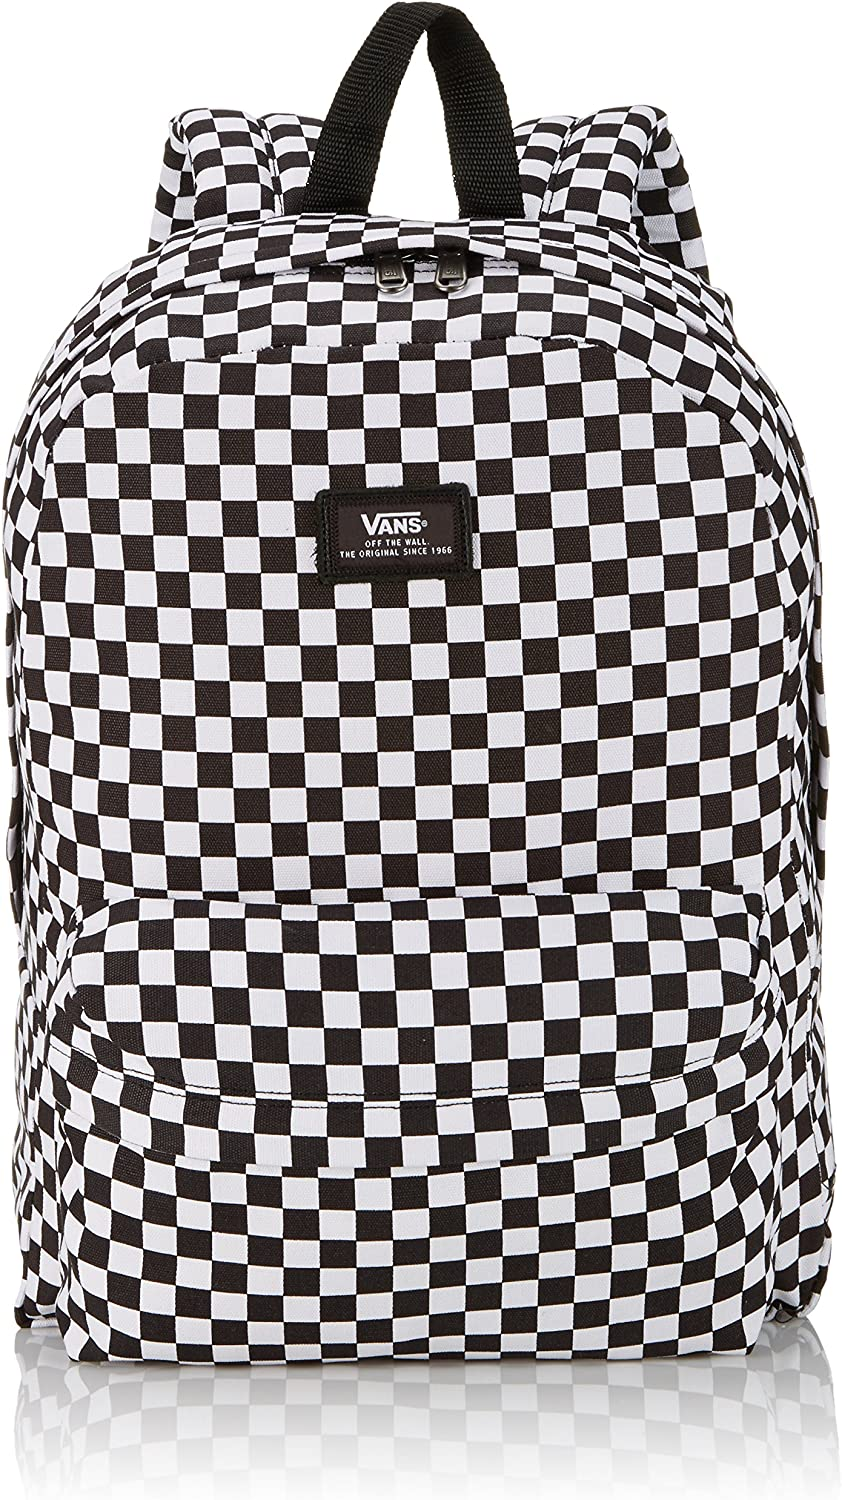 Vans - Old Skool II, Mochila Hombre, Multicolor (Black/White Check), Talla Unica